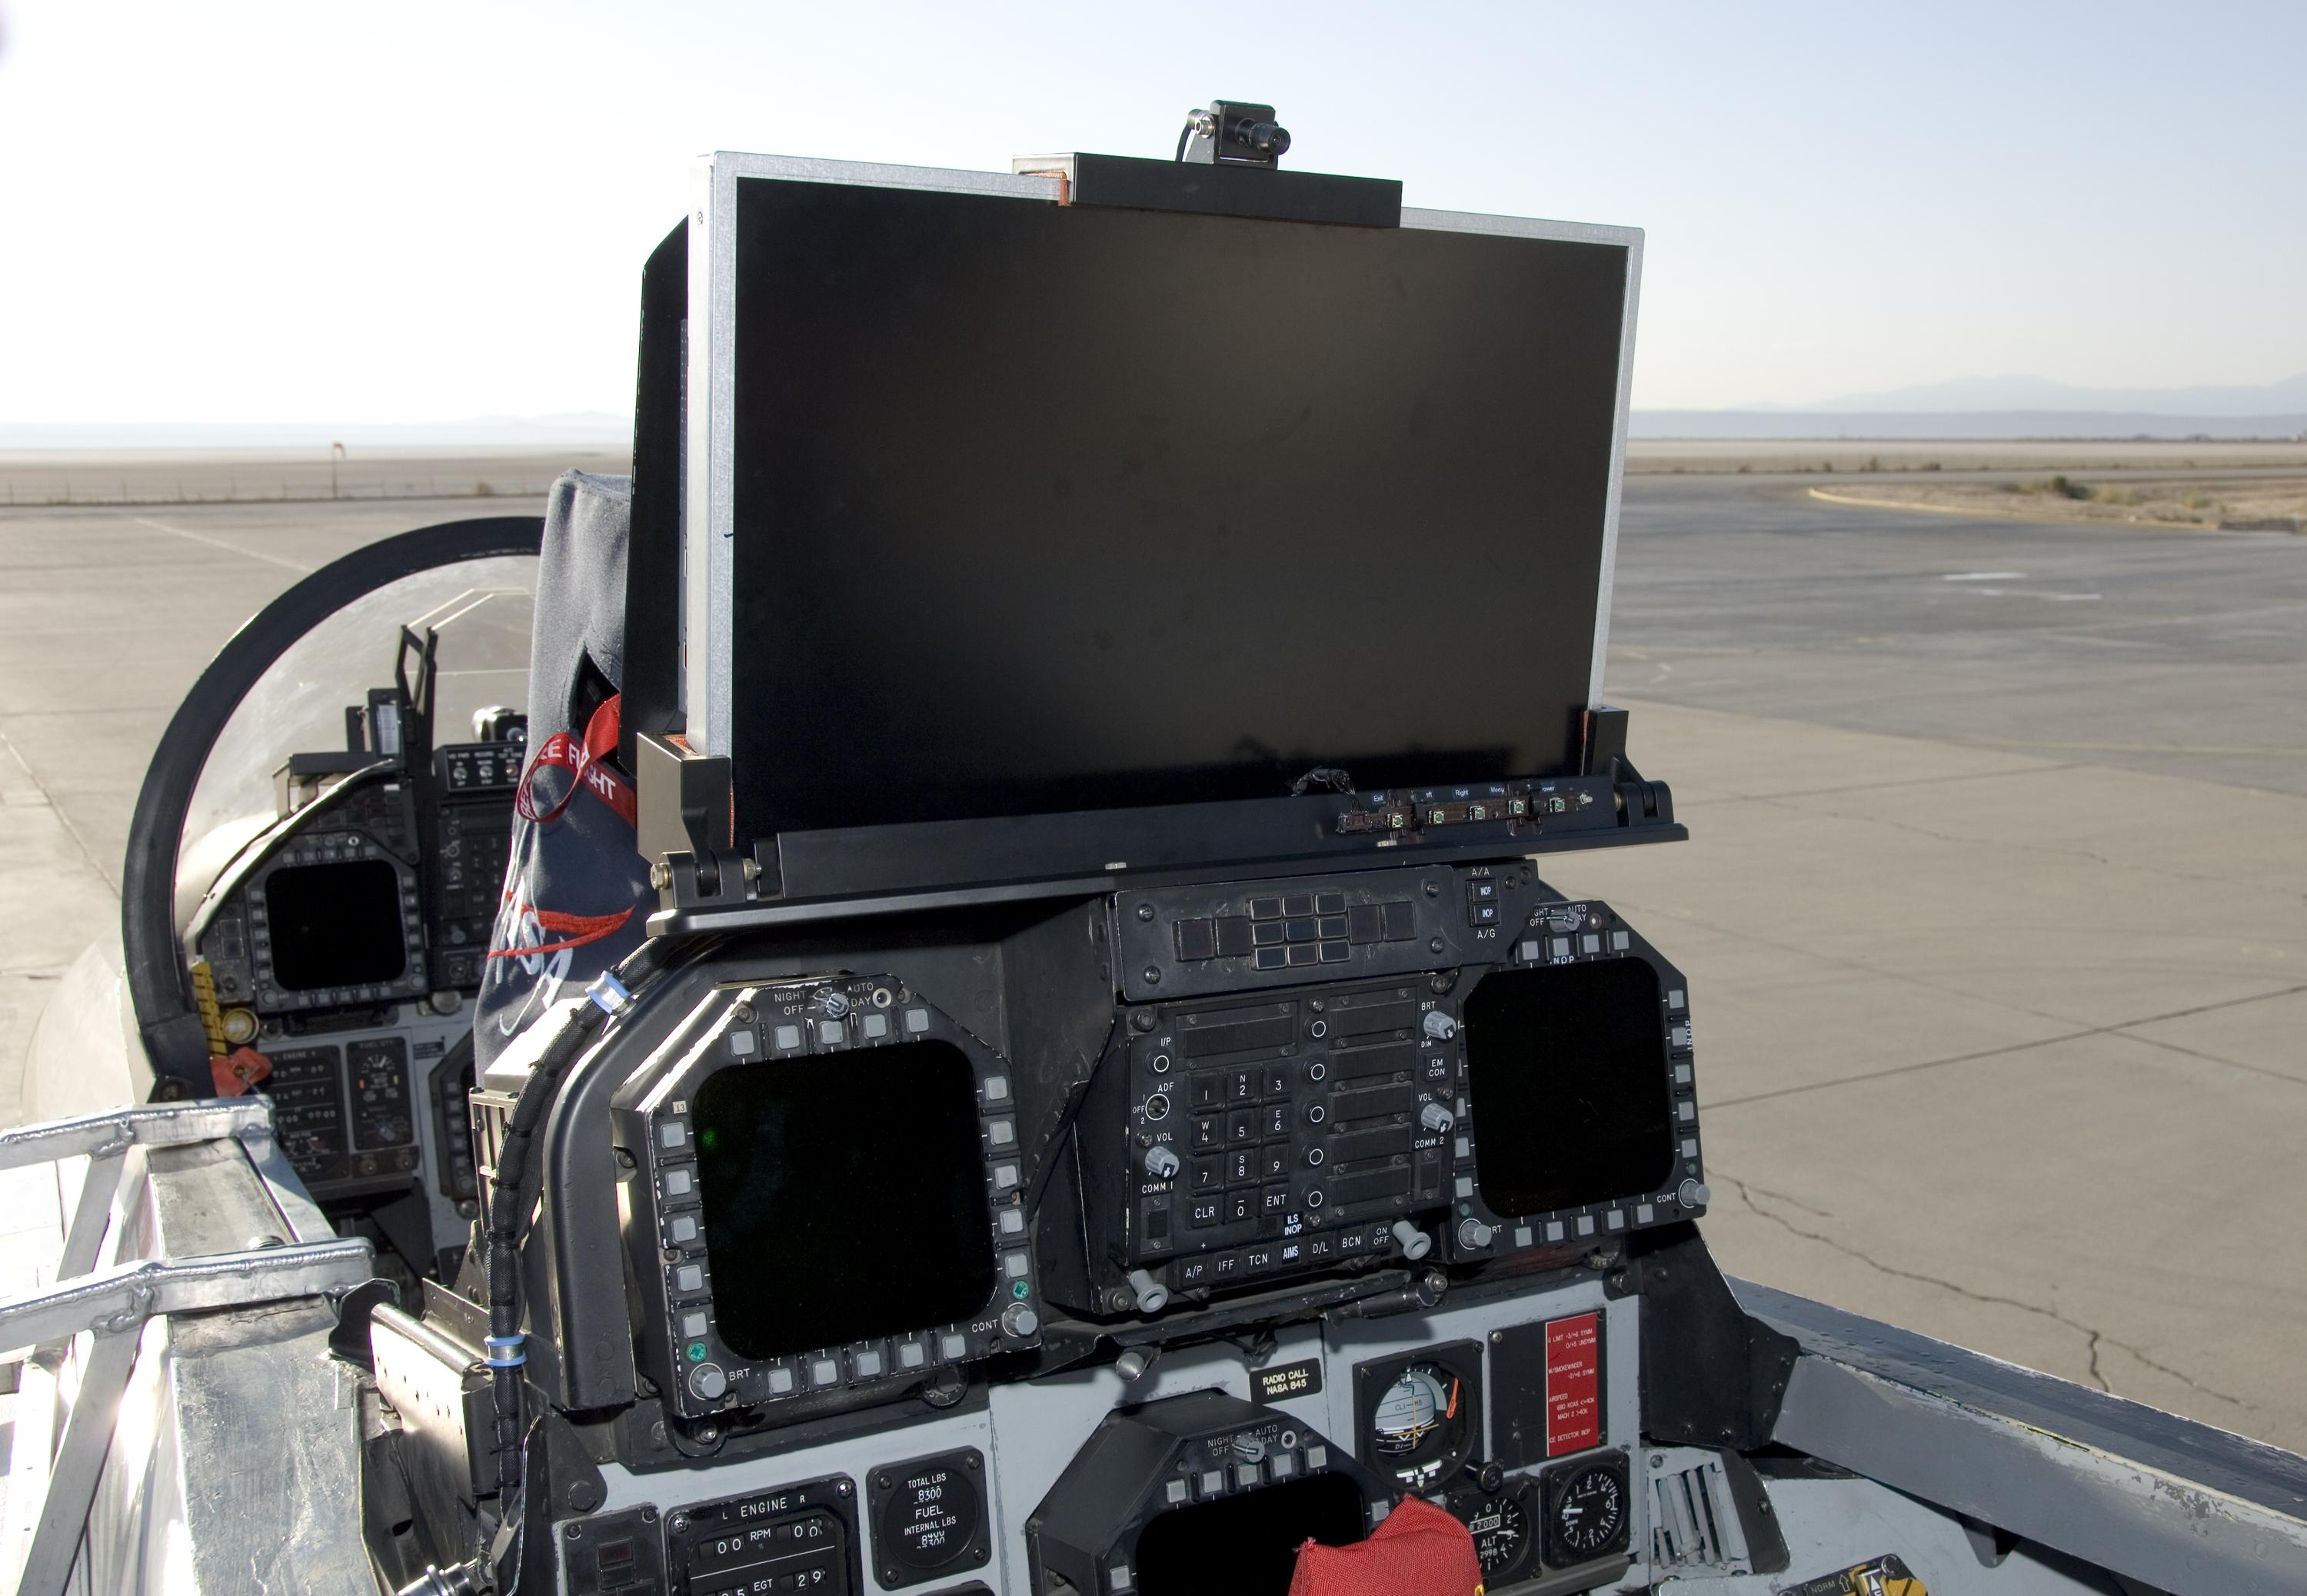 Hd display mounted on rear instrument panel in sra nasa